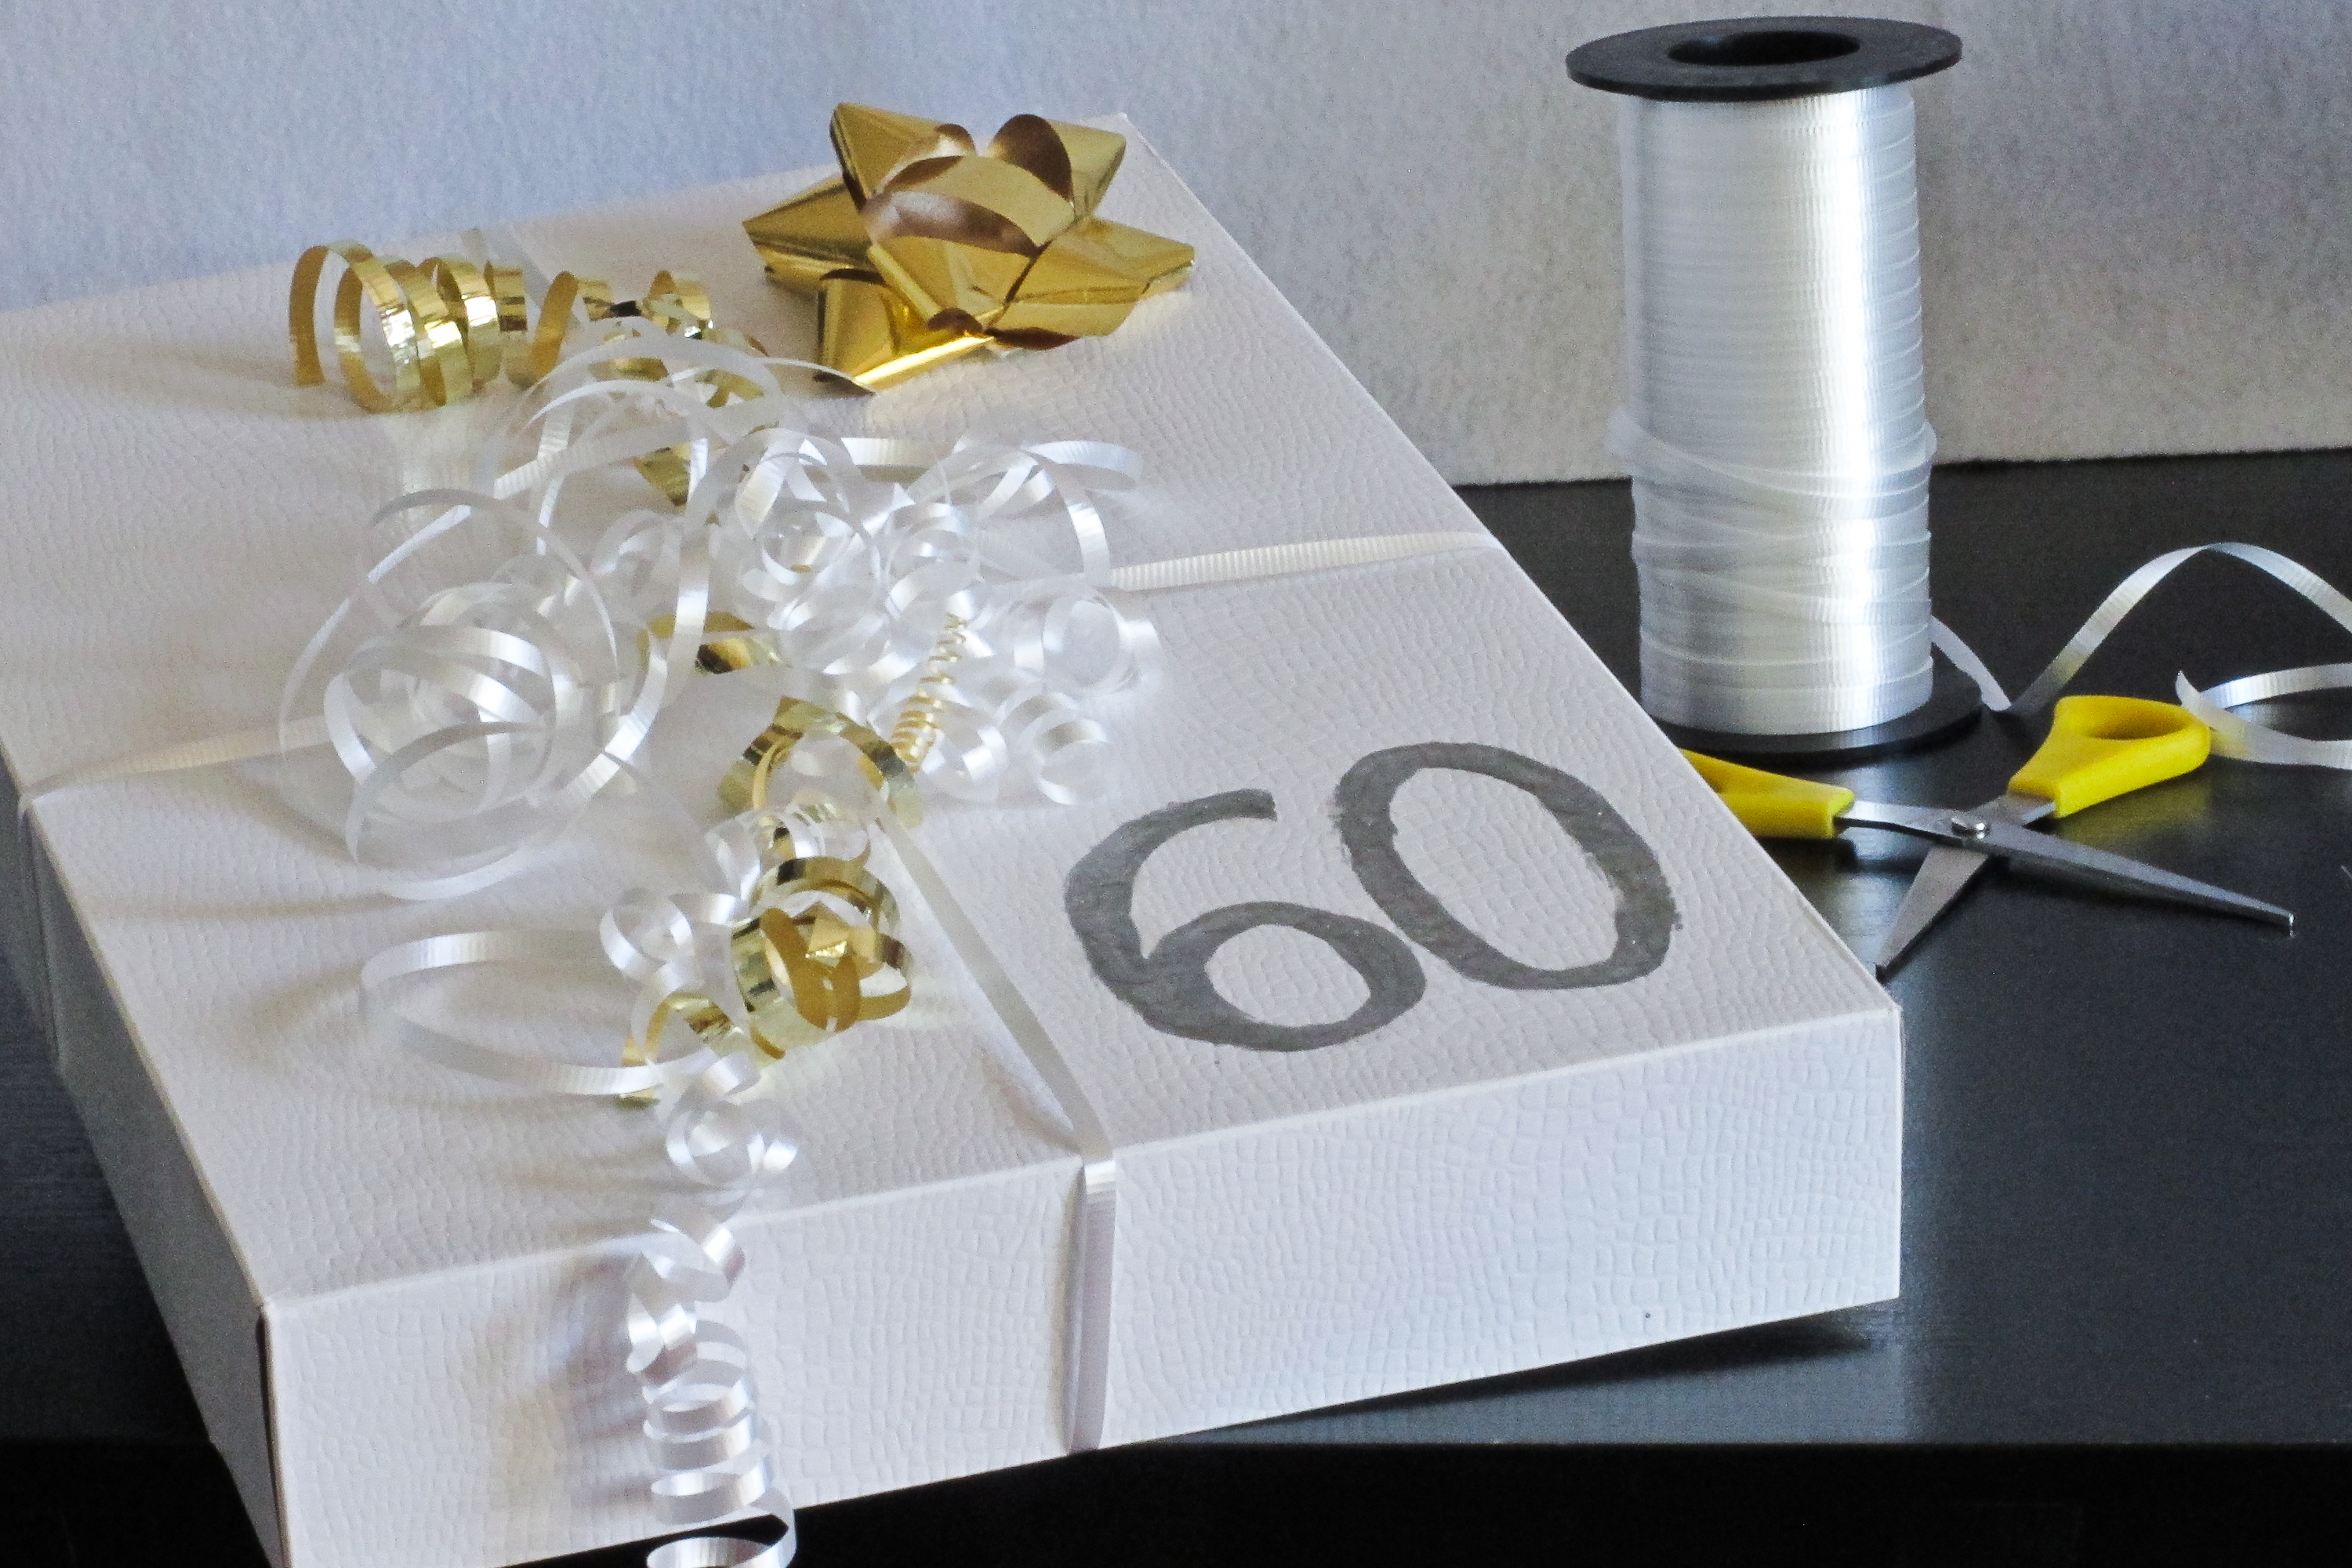 Ideas For 60th Wedding Anniversary Gifts For Parents : Ideas 60th Wedding Anniversary Gifts For Parents 60th wedding ...